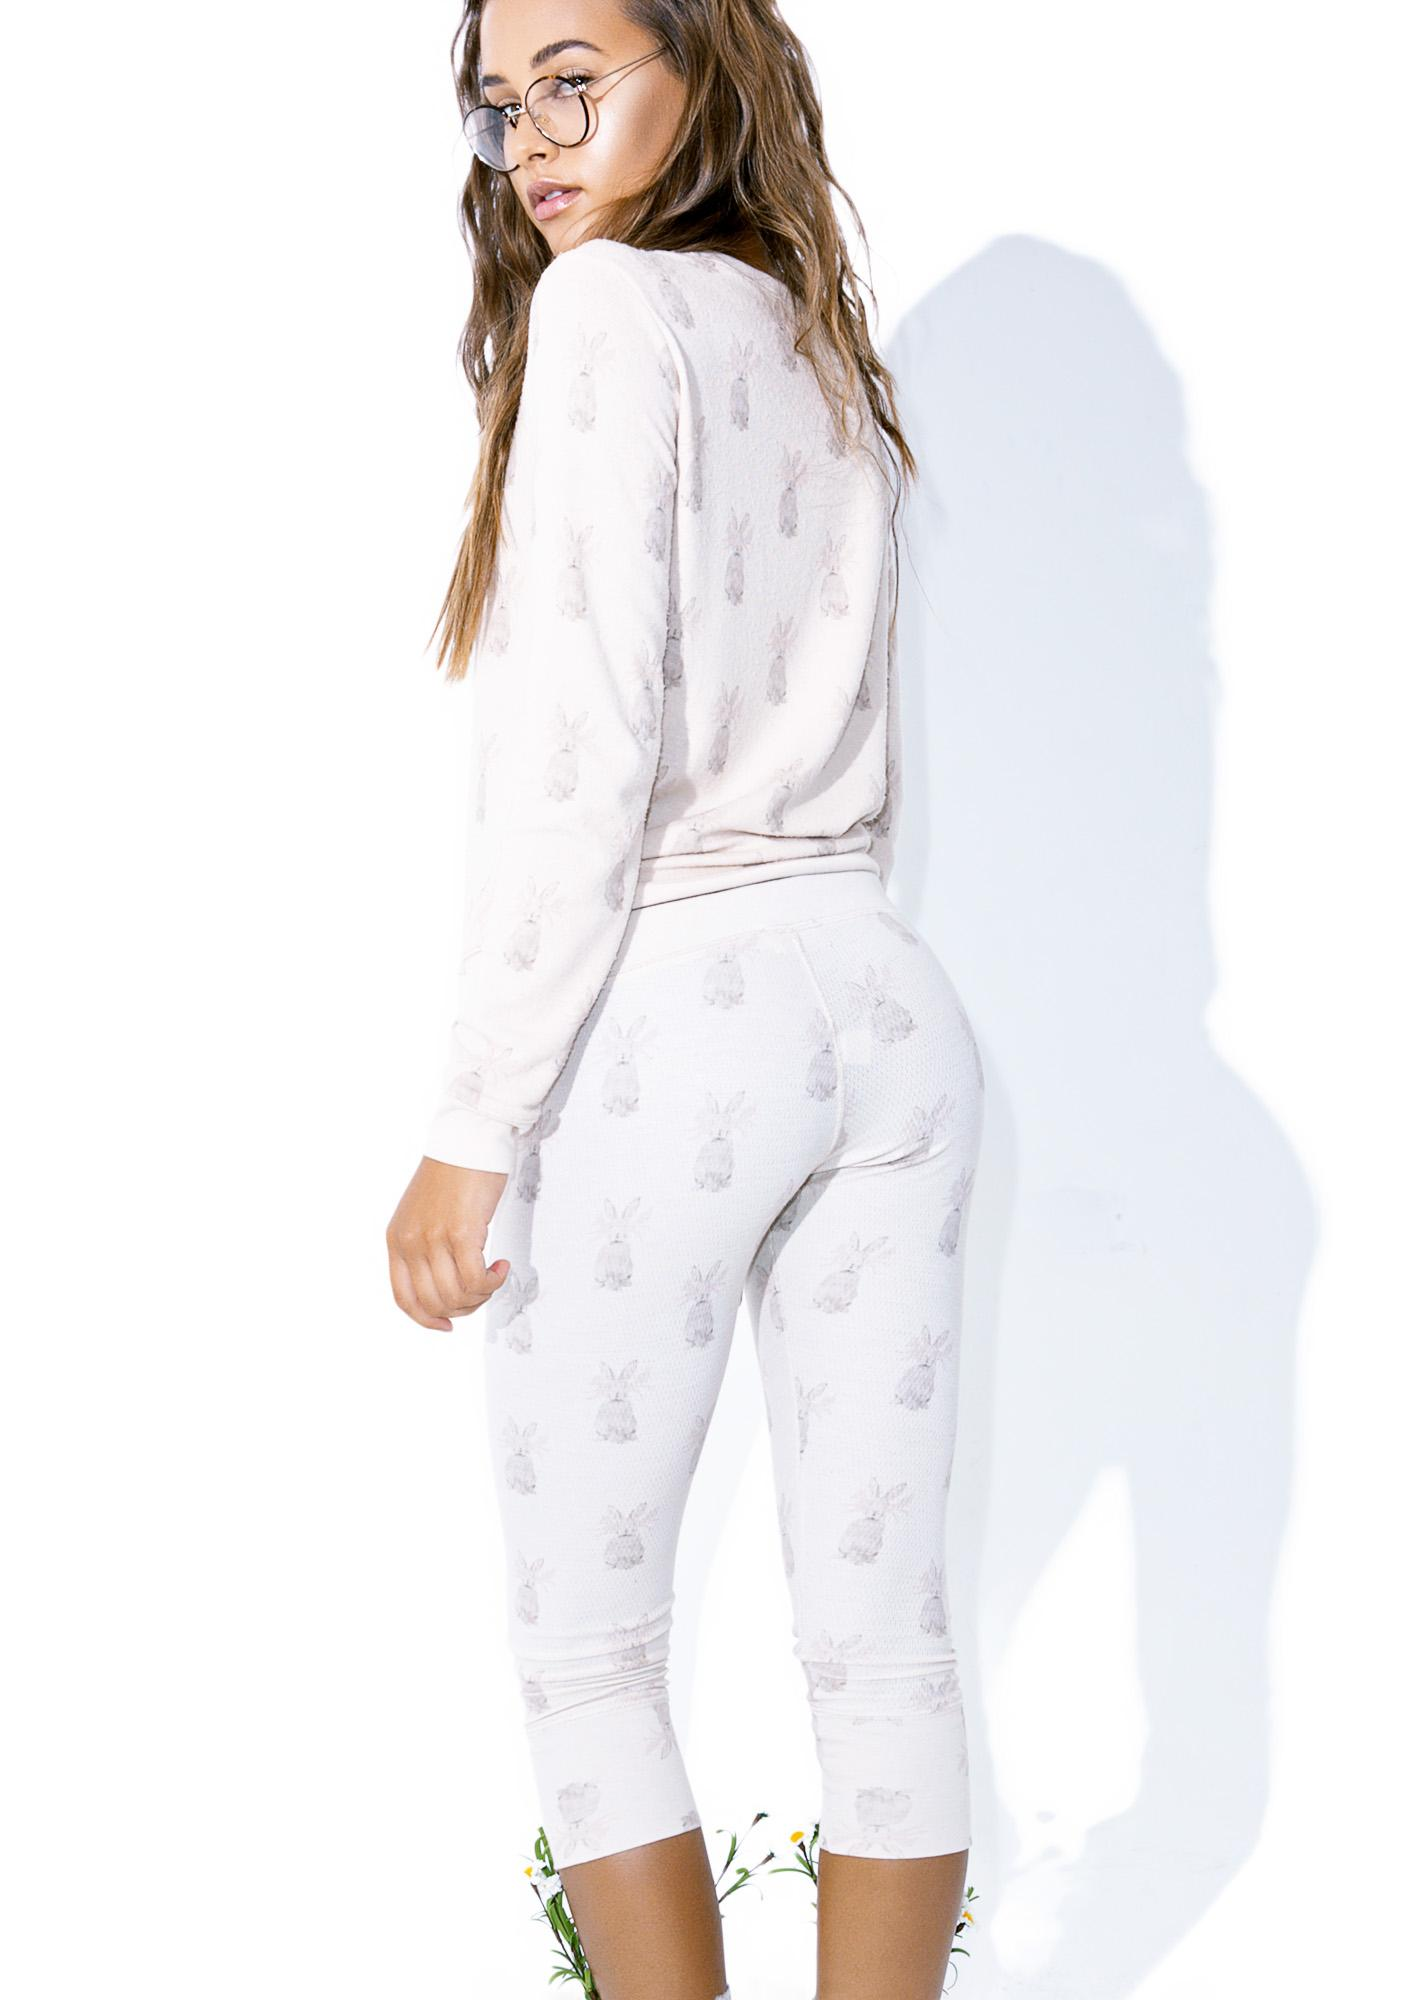 All Things Fabulous Rabbit Thermal Pants